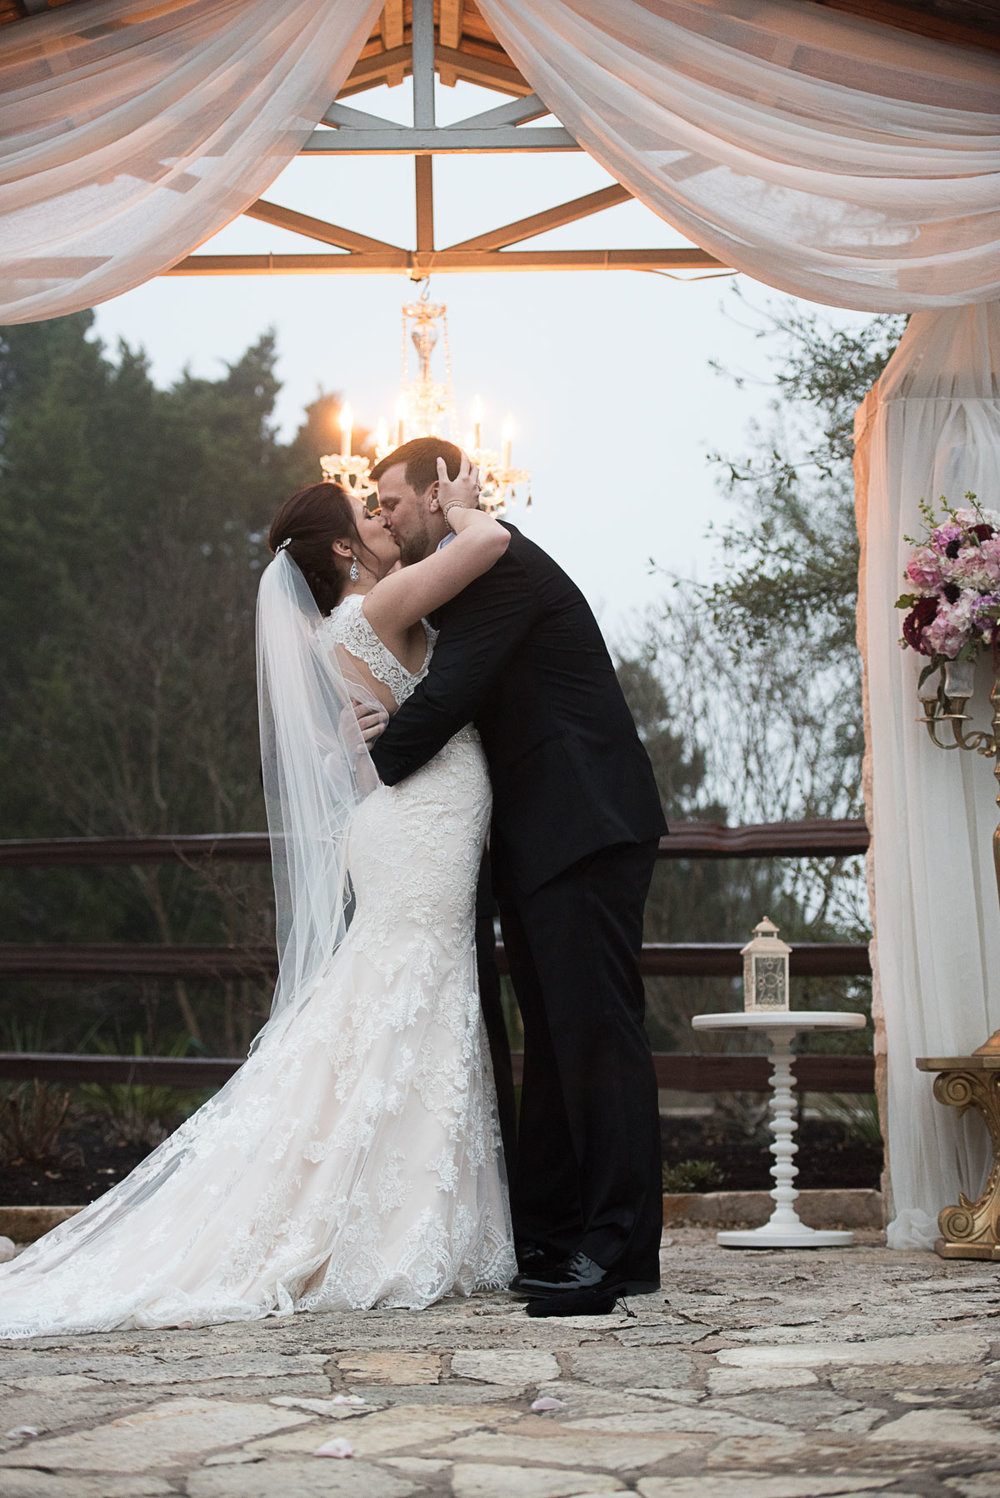 Austin Texas Wedding at the Terrace Club in Drippin Springs Fog in February-102.JPG